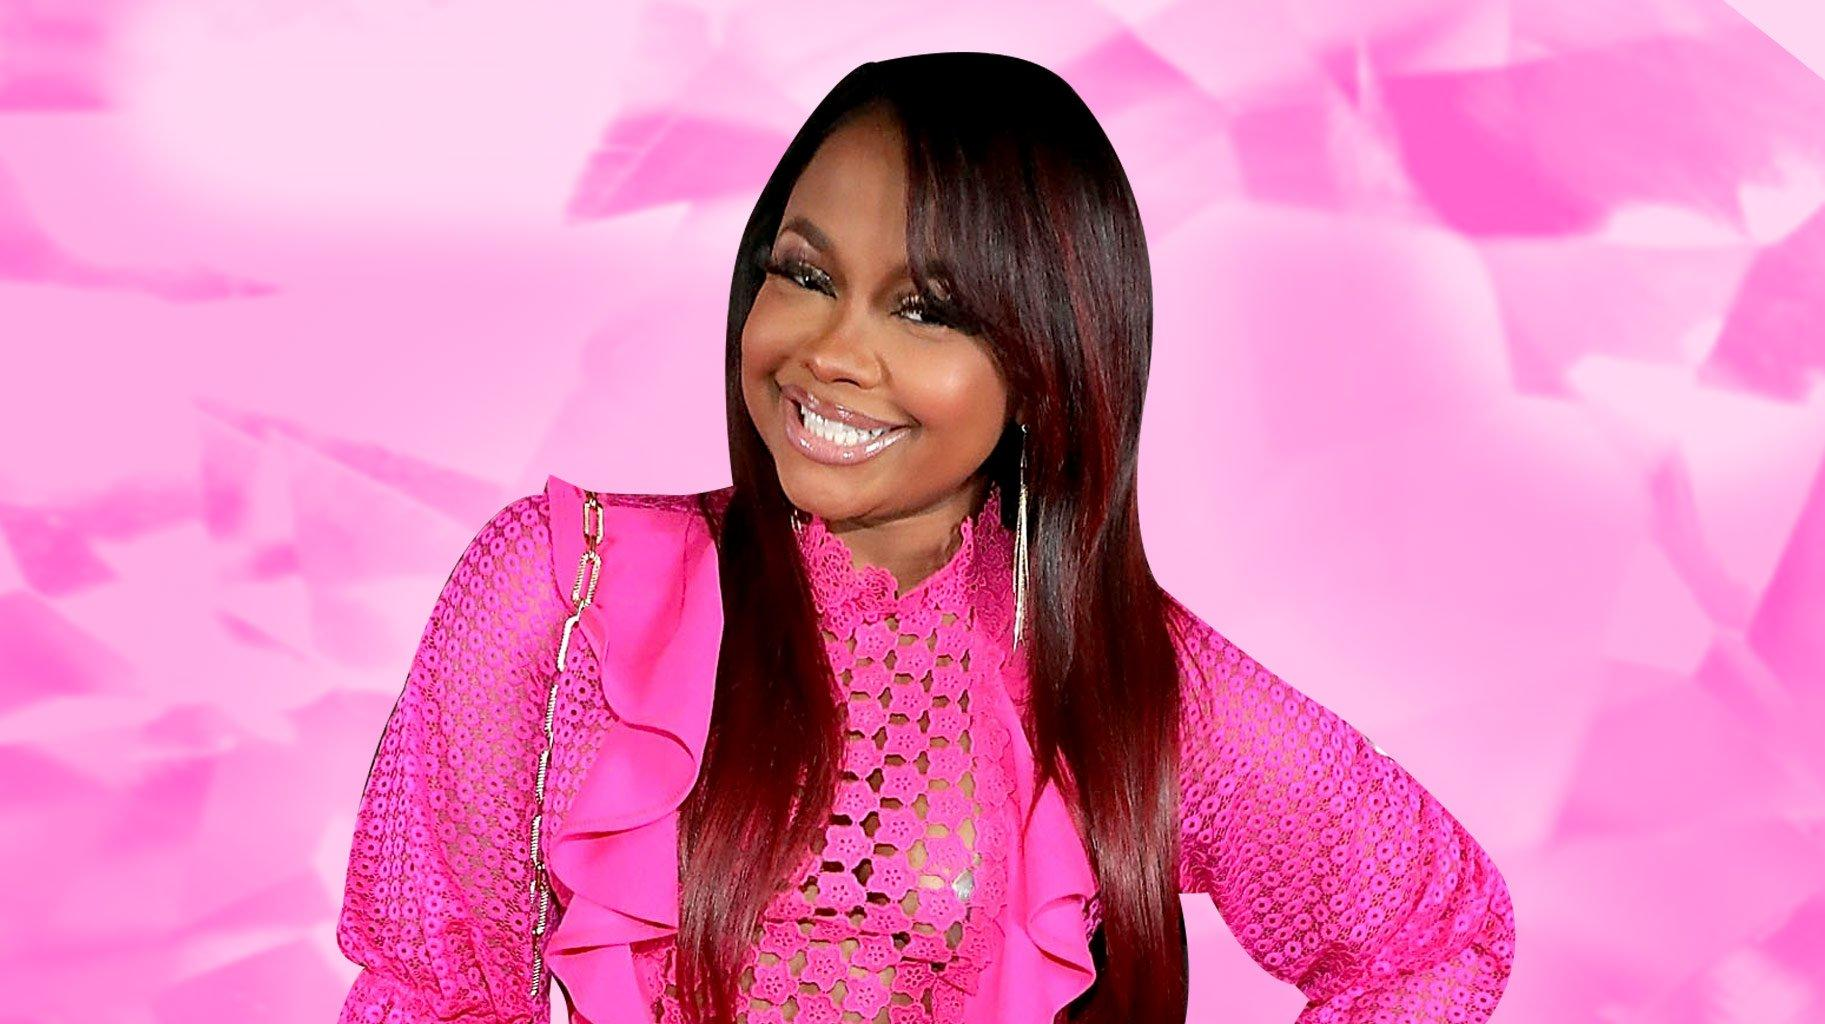 Phaedra Parks Celebrates Grandparents Day - See Her Photo That Made Fans Happy